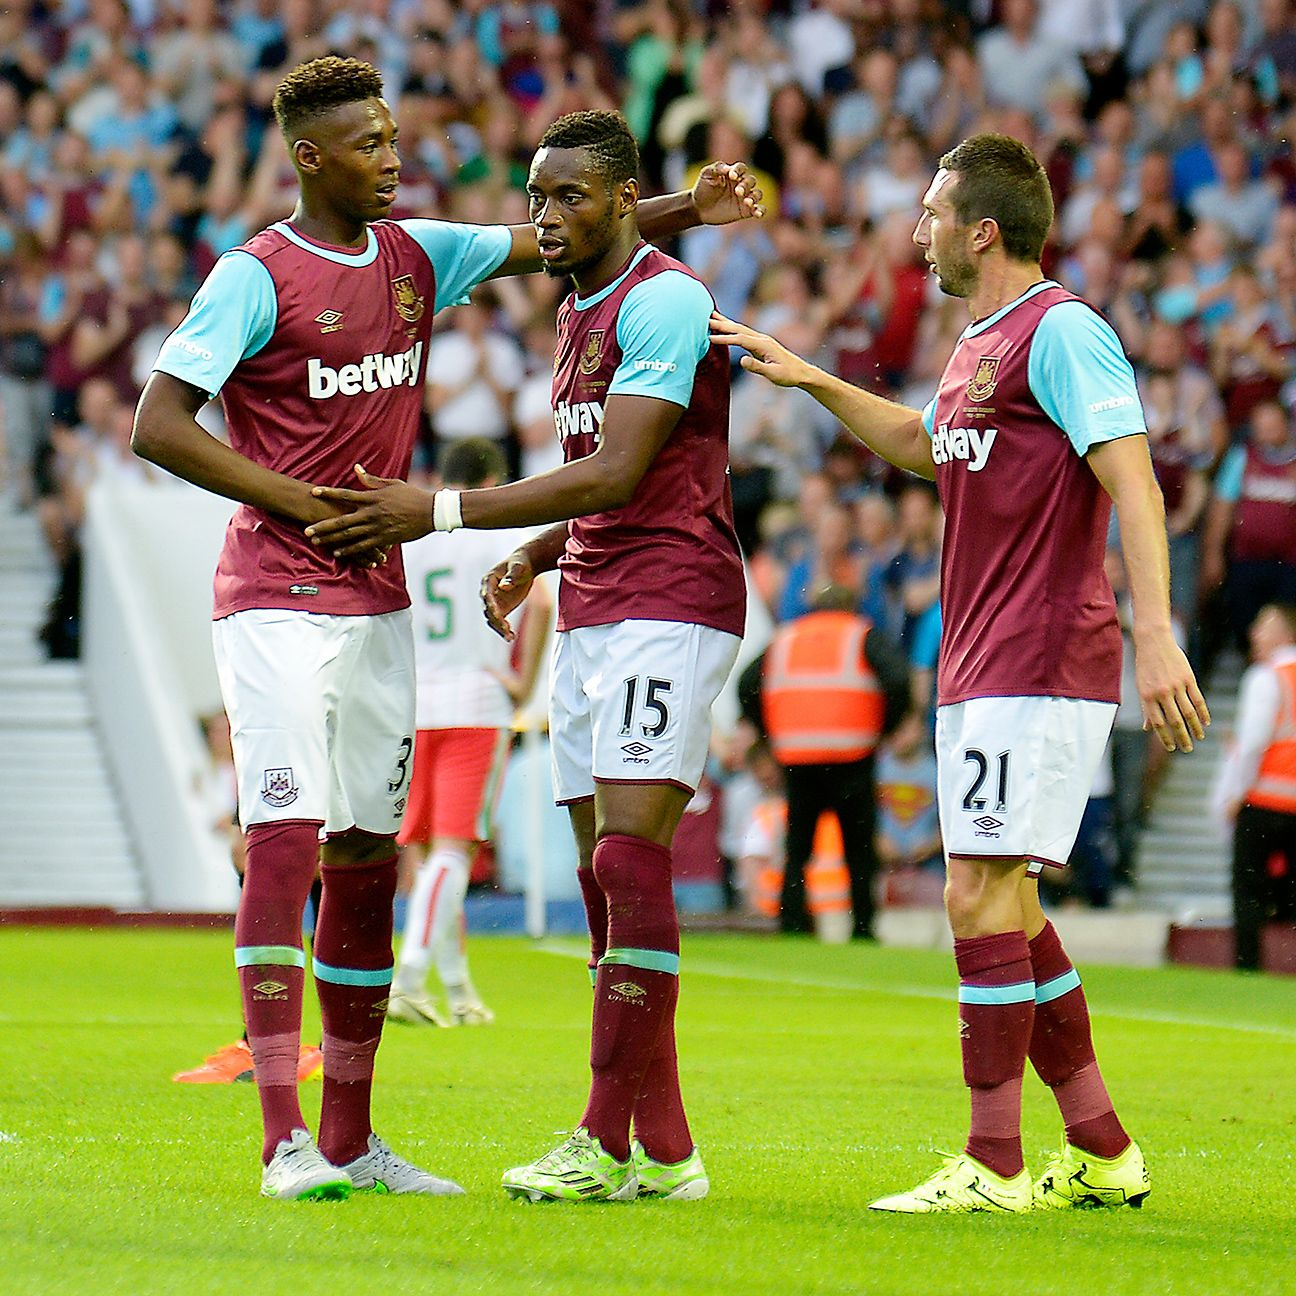 West Ham started their 2015-16 season on the right foot with a 3-0 Europa League win over FC Lusitanos of Andorra.